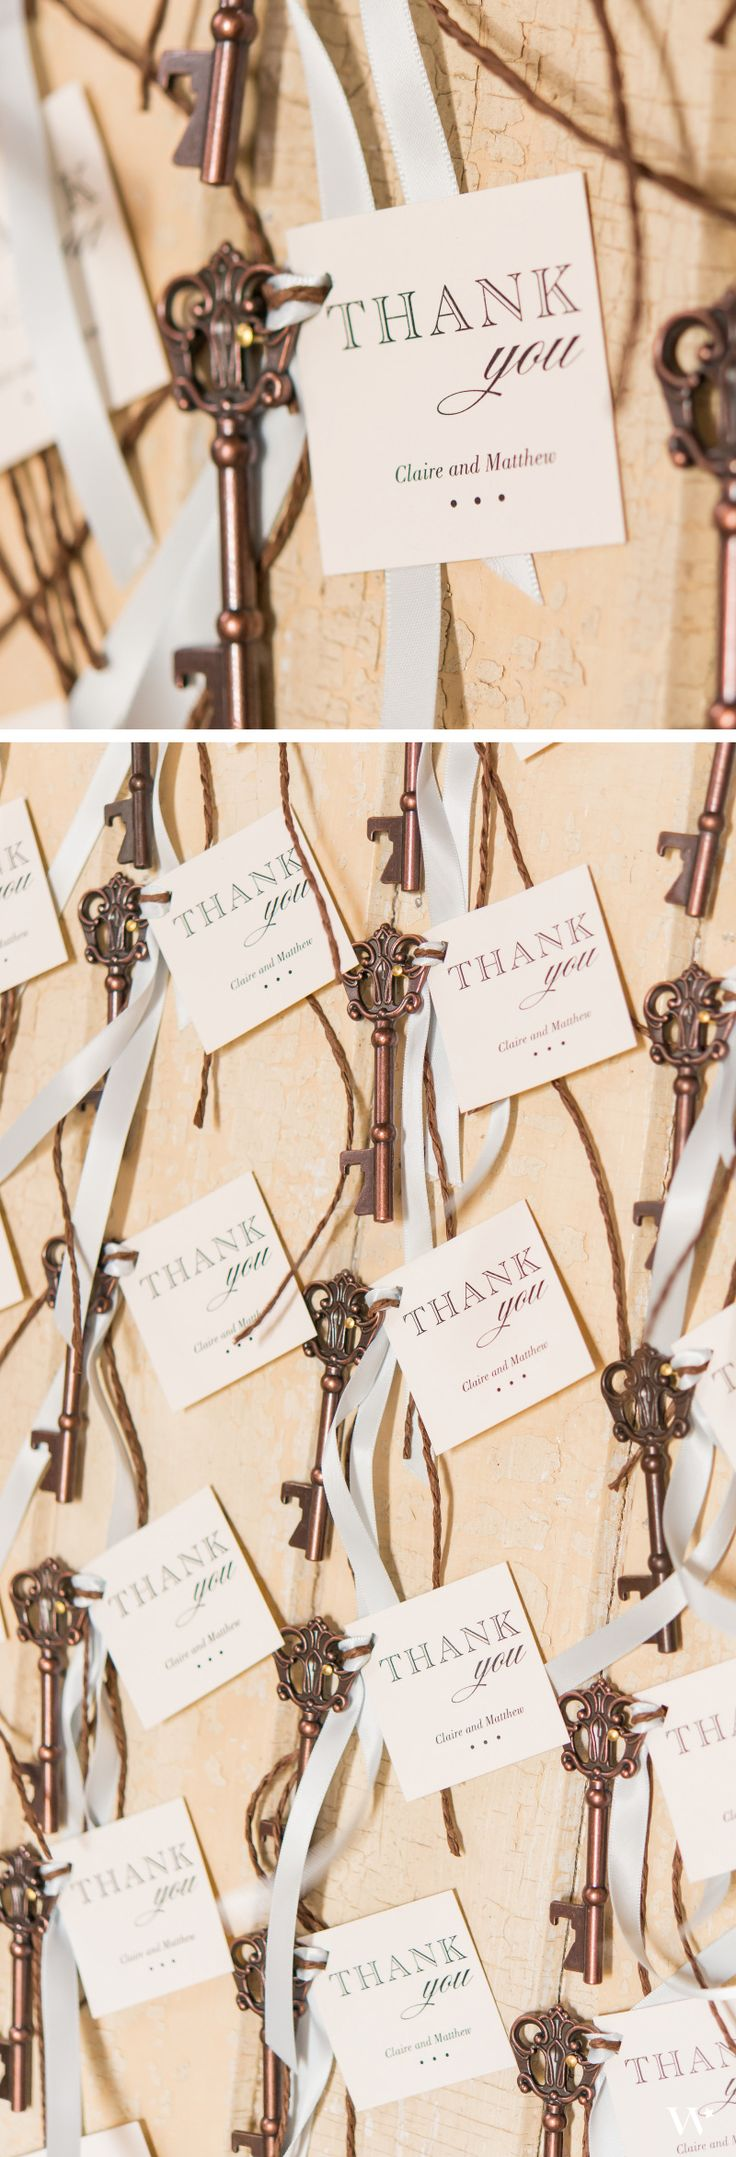 Create DIY favors your guests will adore with our Antique Inspired Key Bottle Opener attached to our Burlap Chic Thank You Tags! Grab them both starting here: http://www.weddingstar.com/product/burlap-chic-square-tag